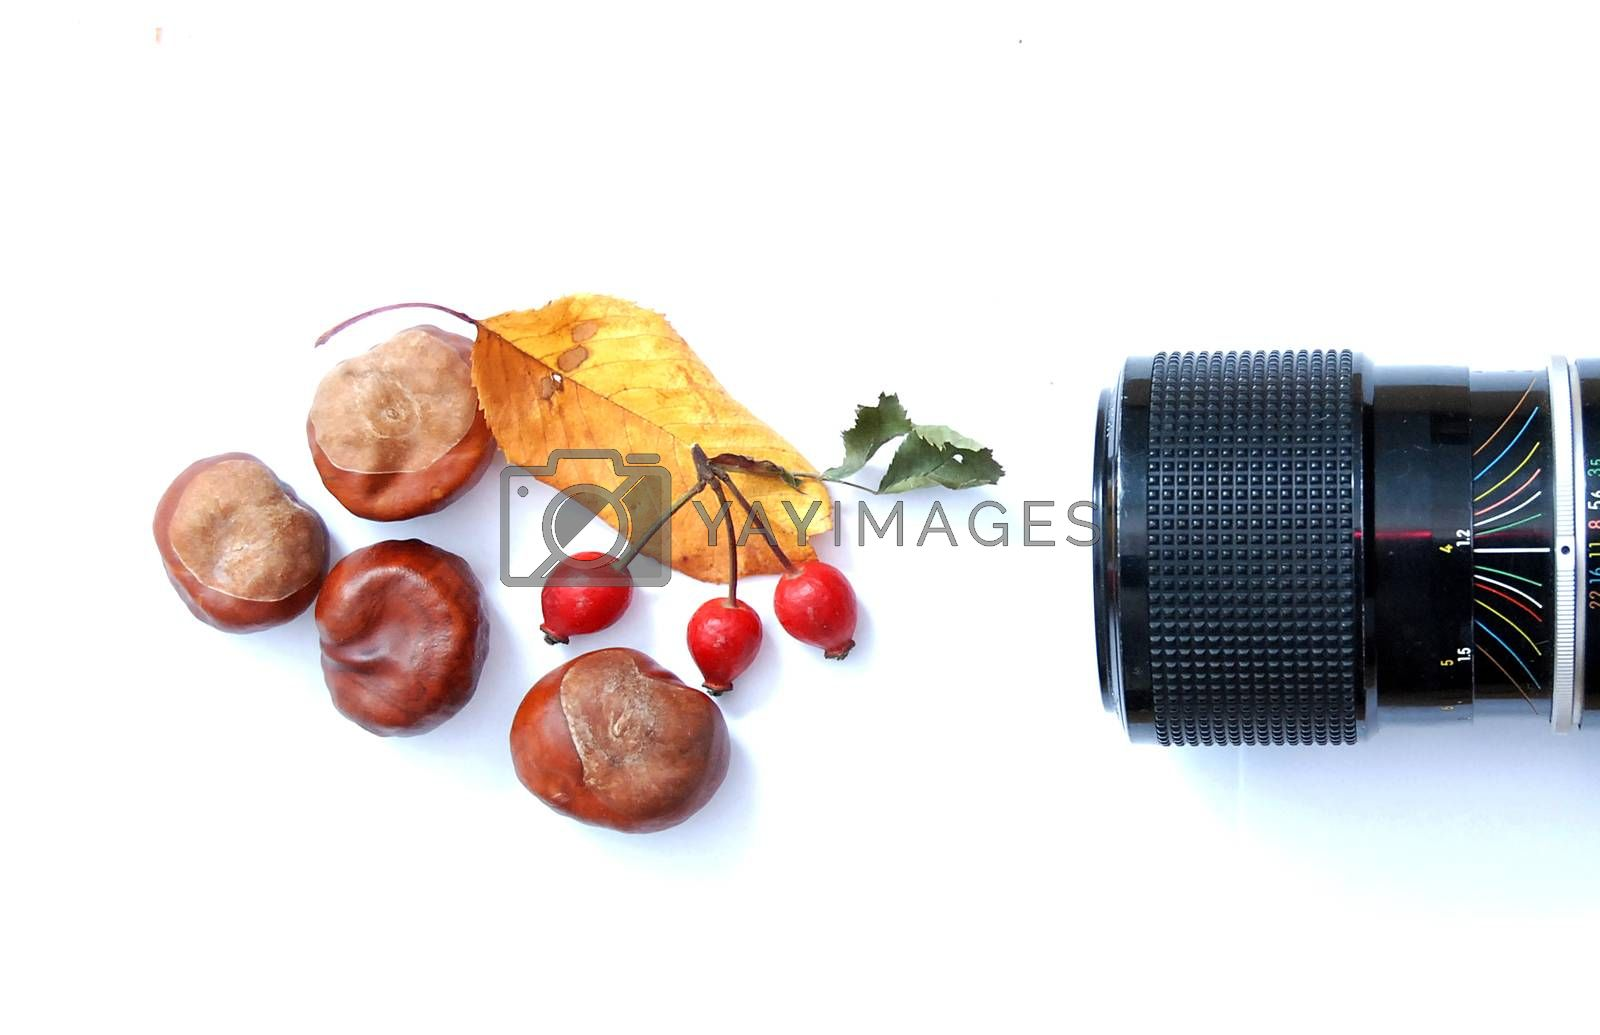 Royalty free image of horse chestnut, camera lens, leaf and rose hips by nehru